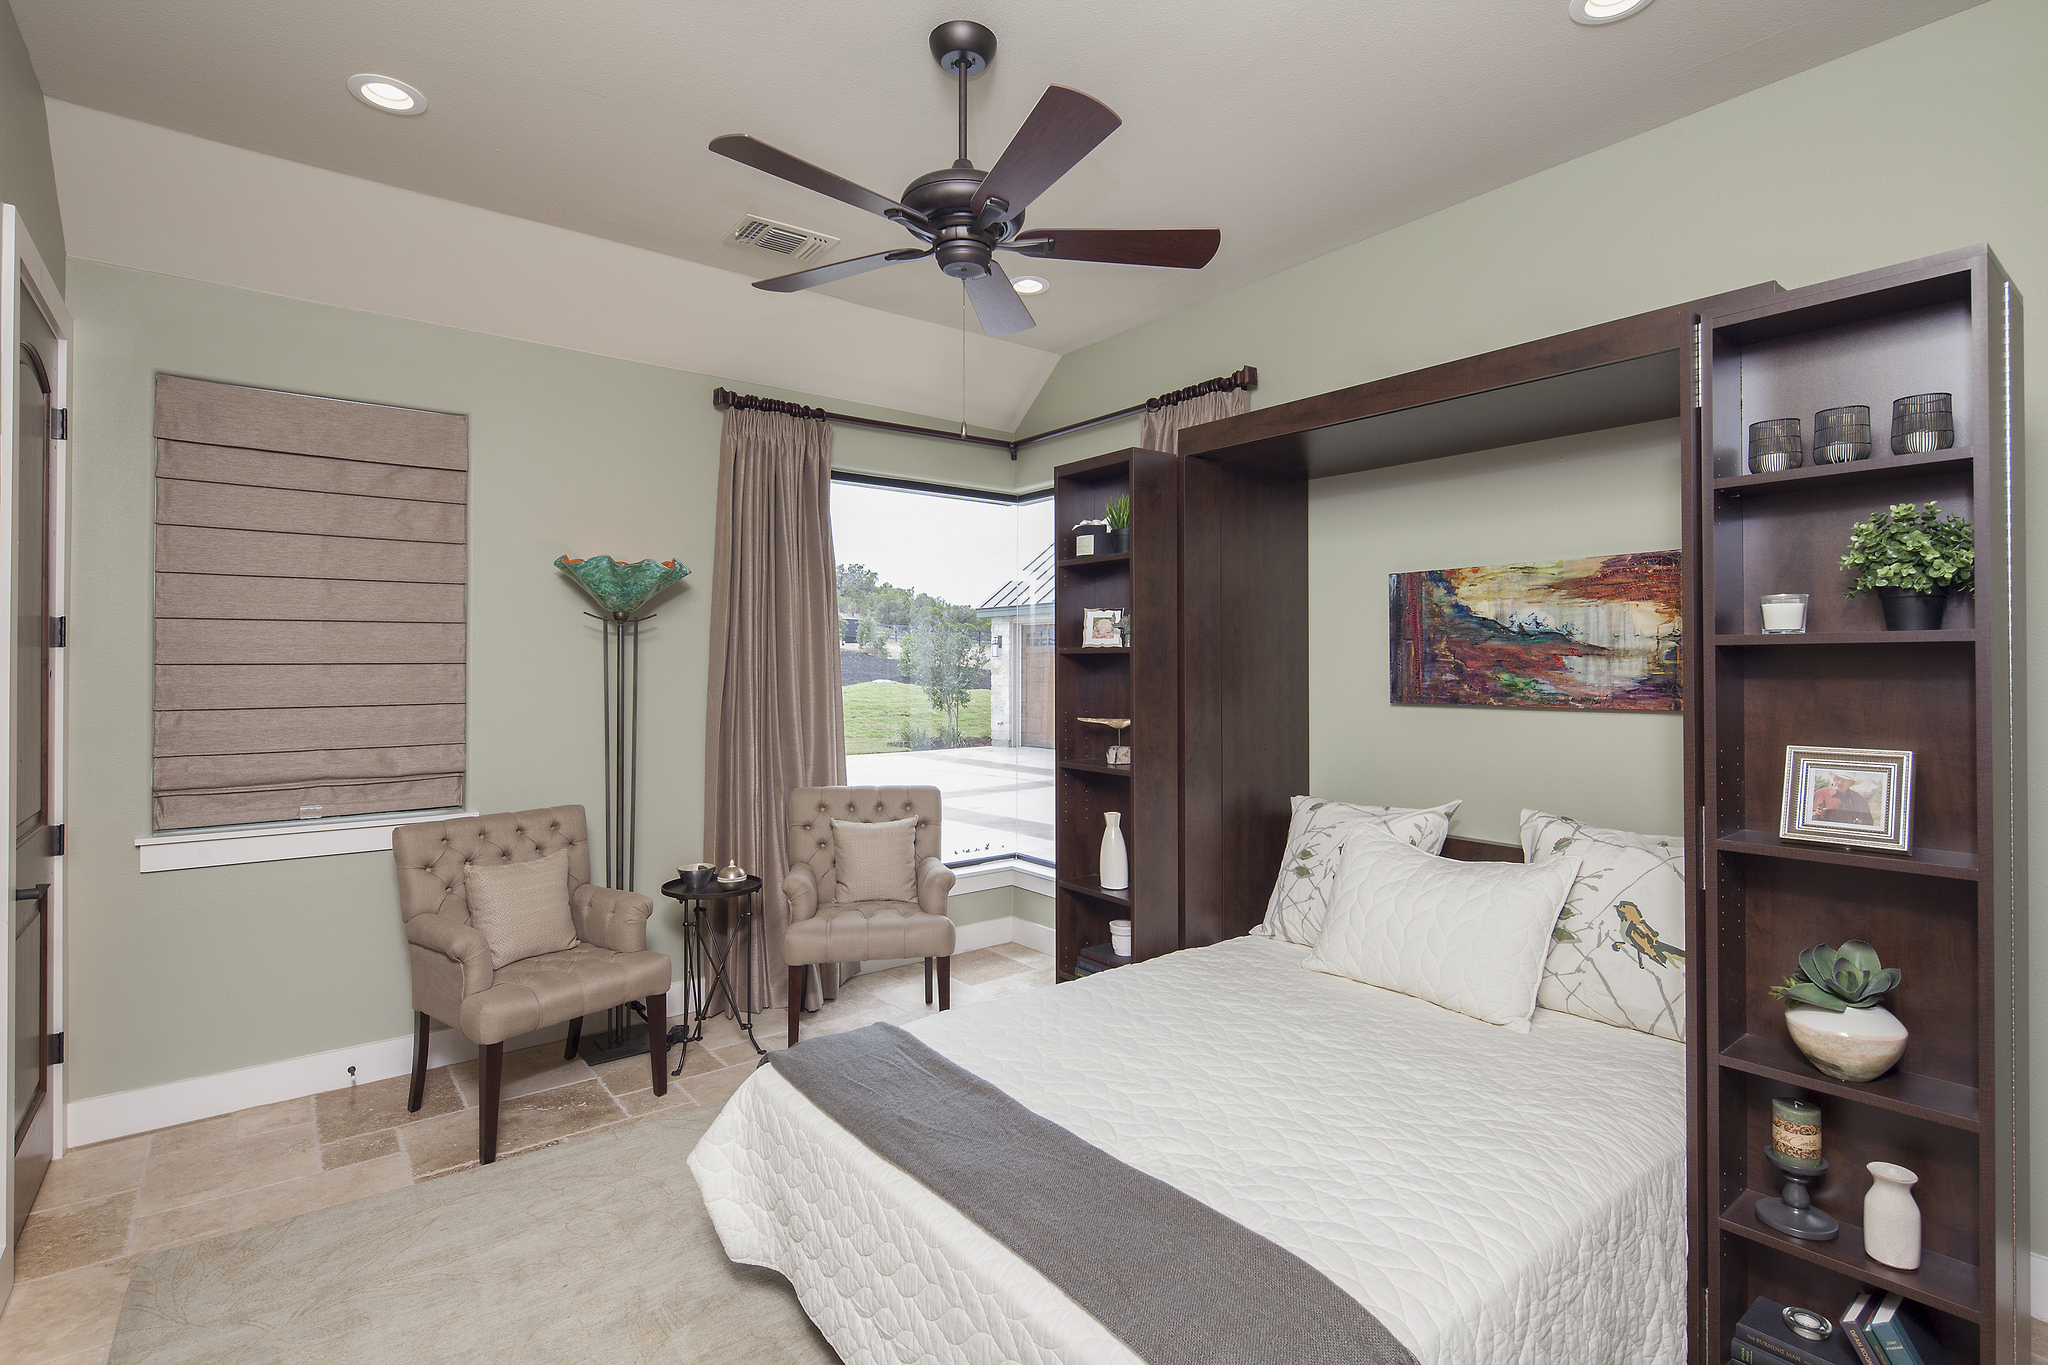 Murphy Beds In Stuart Fl : Murphy beds more space place north palm beach